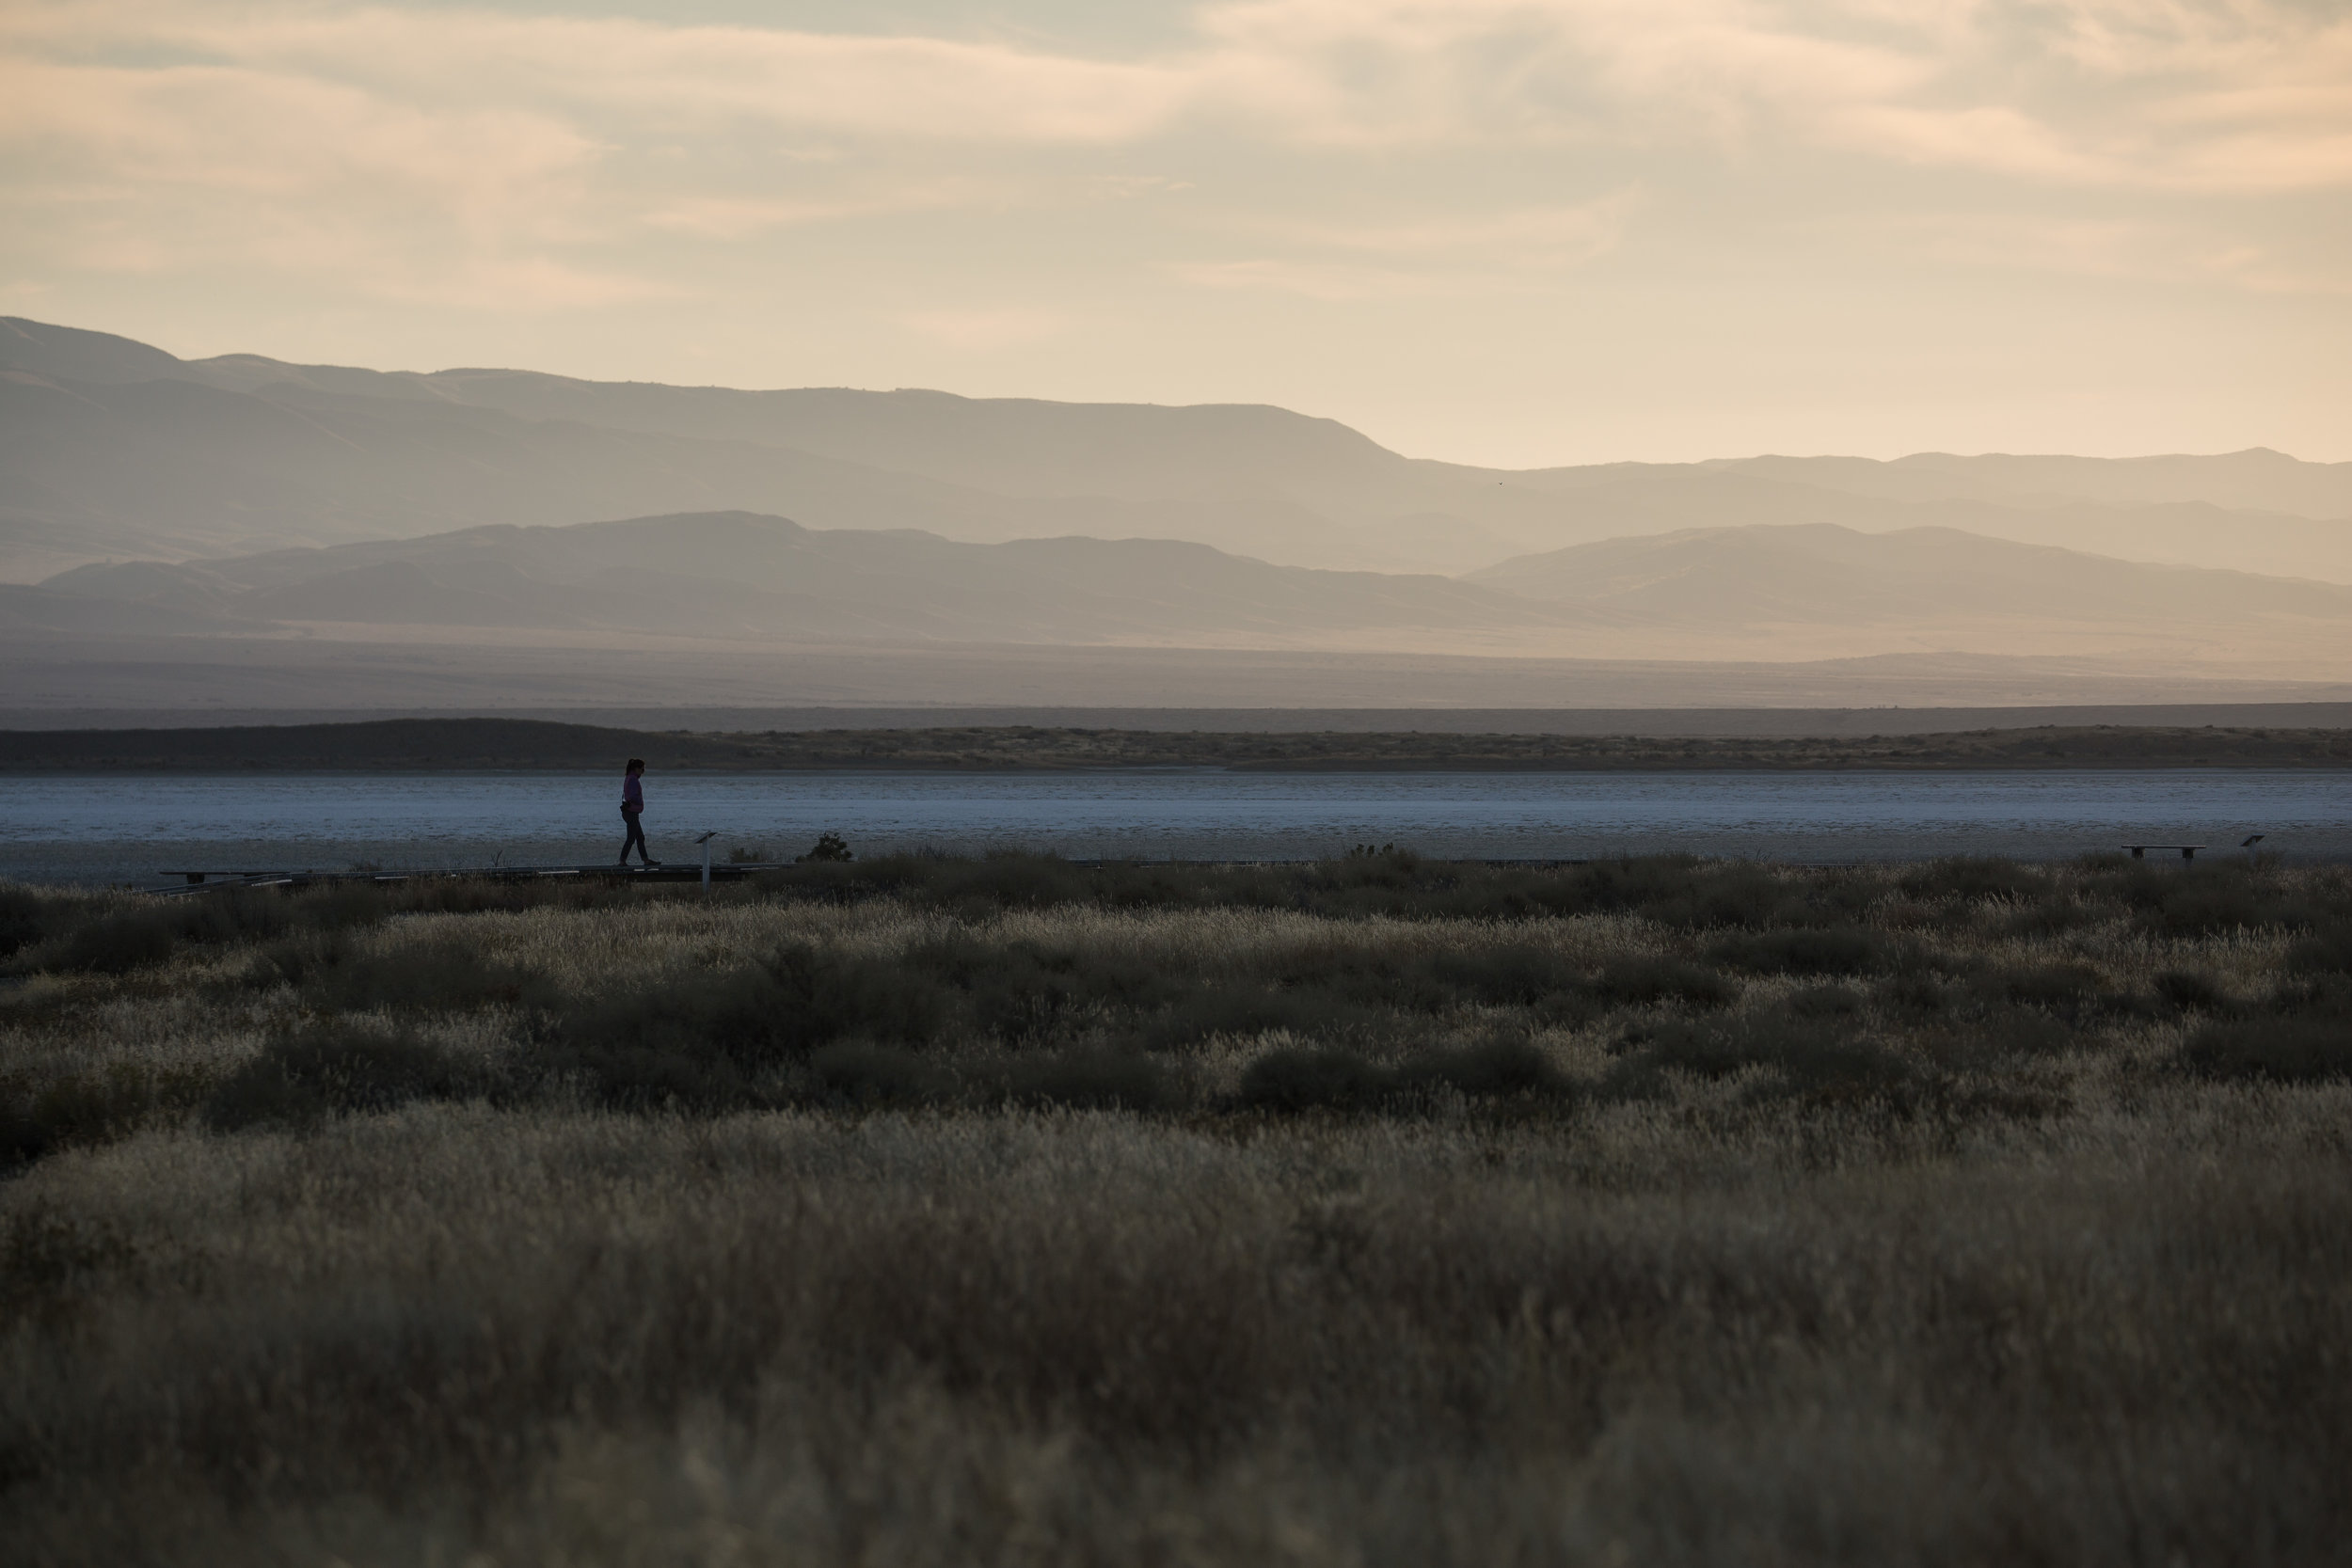 sunrise on soda lake trail - The Soda Lake Trail, centrally located within the monument, has interpretive signs that give a brief history of the region and the importance of its ecosystems.